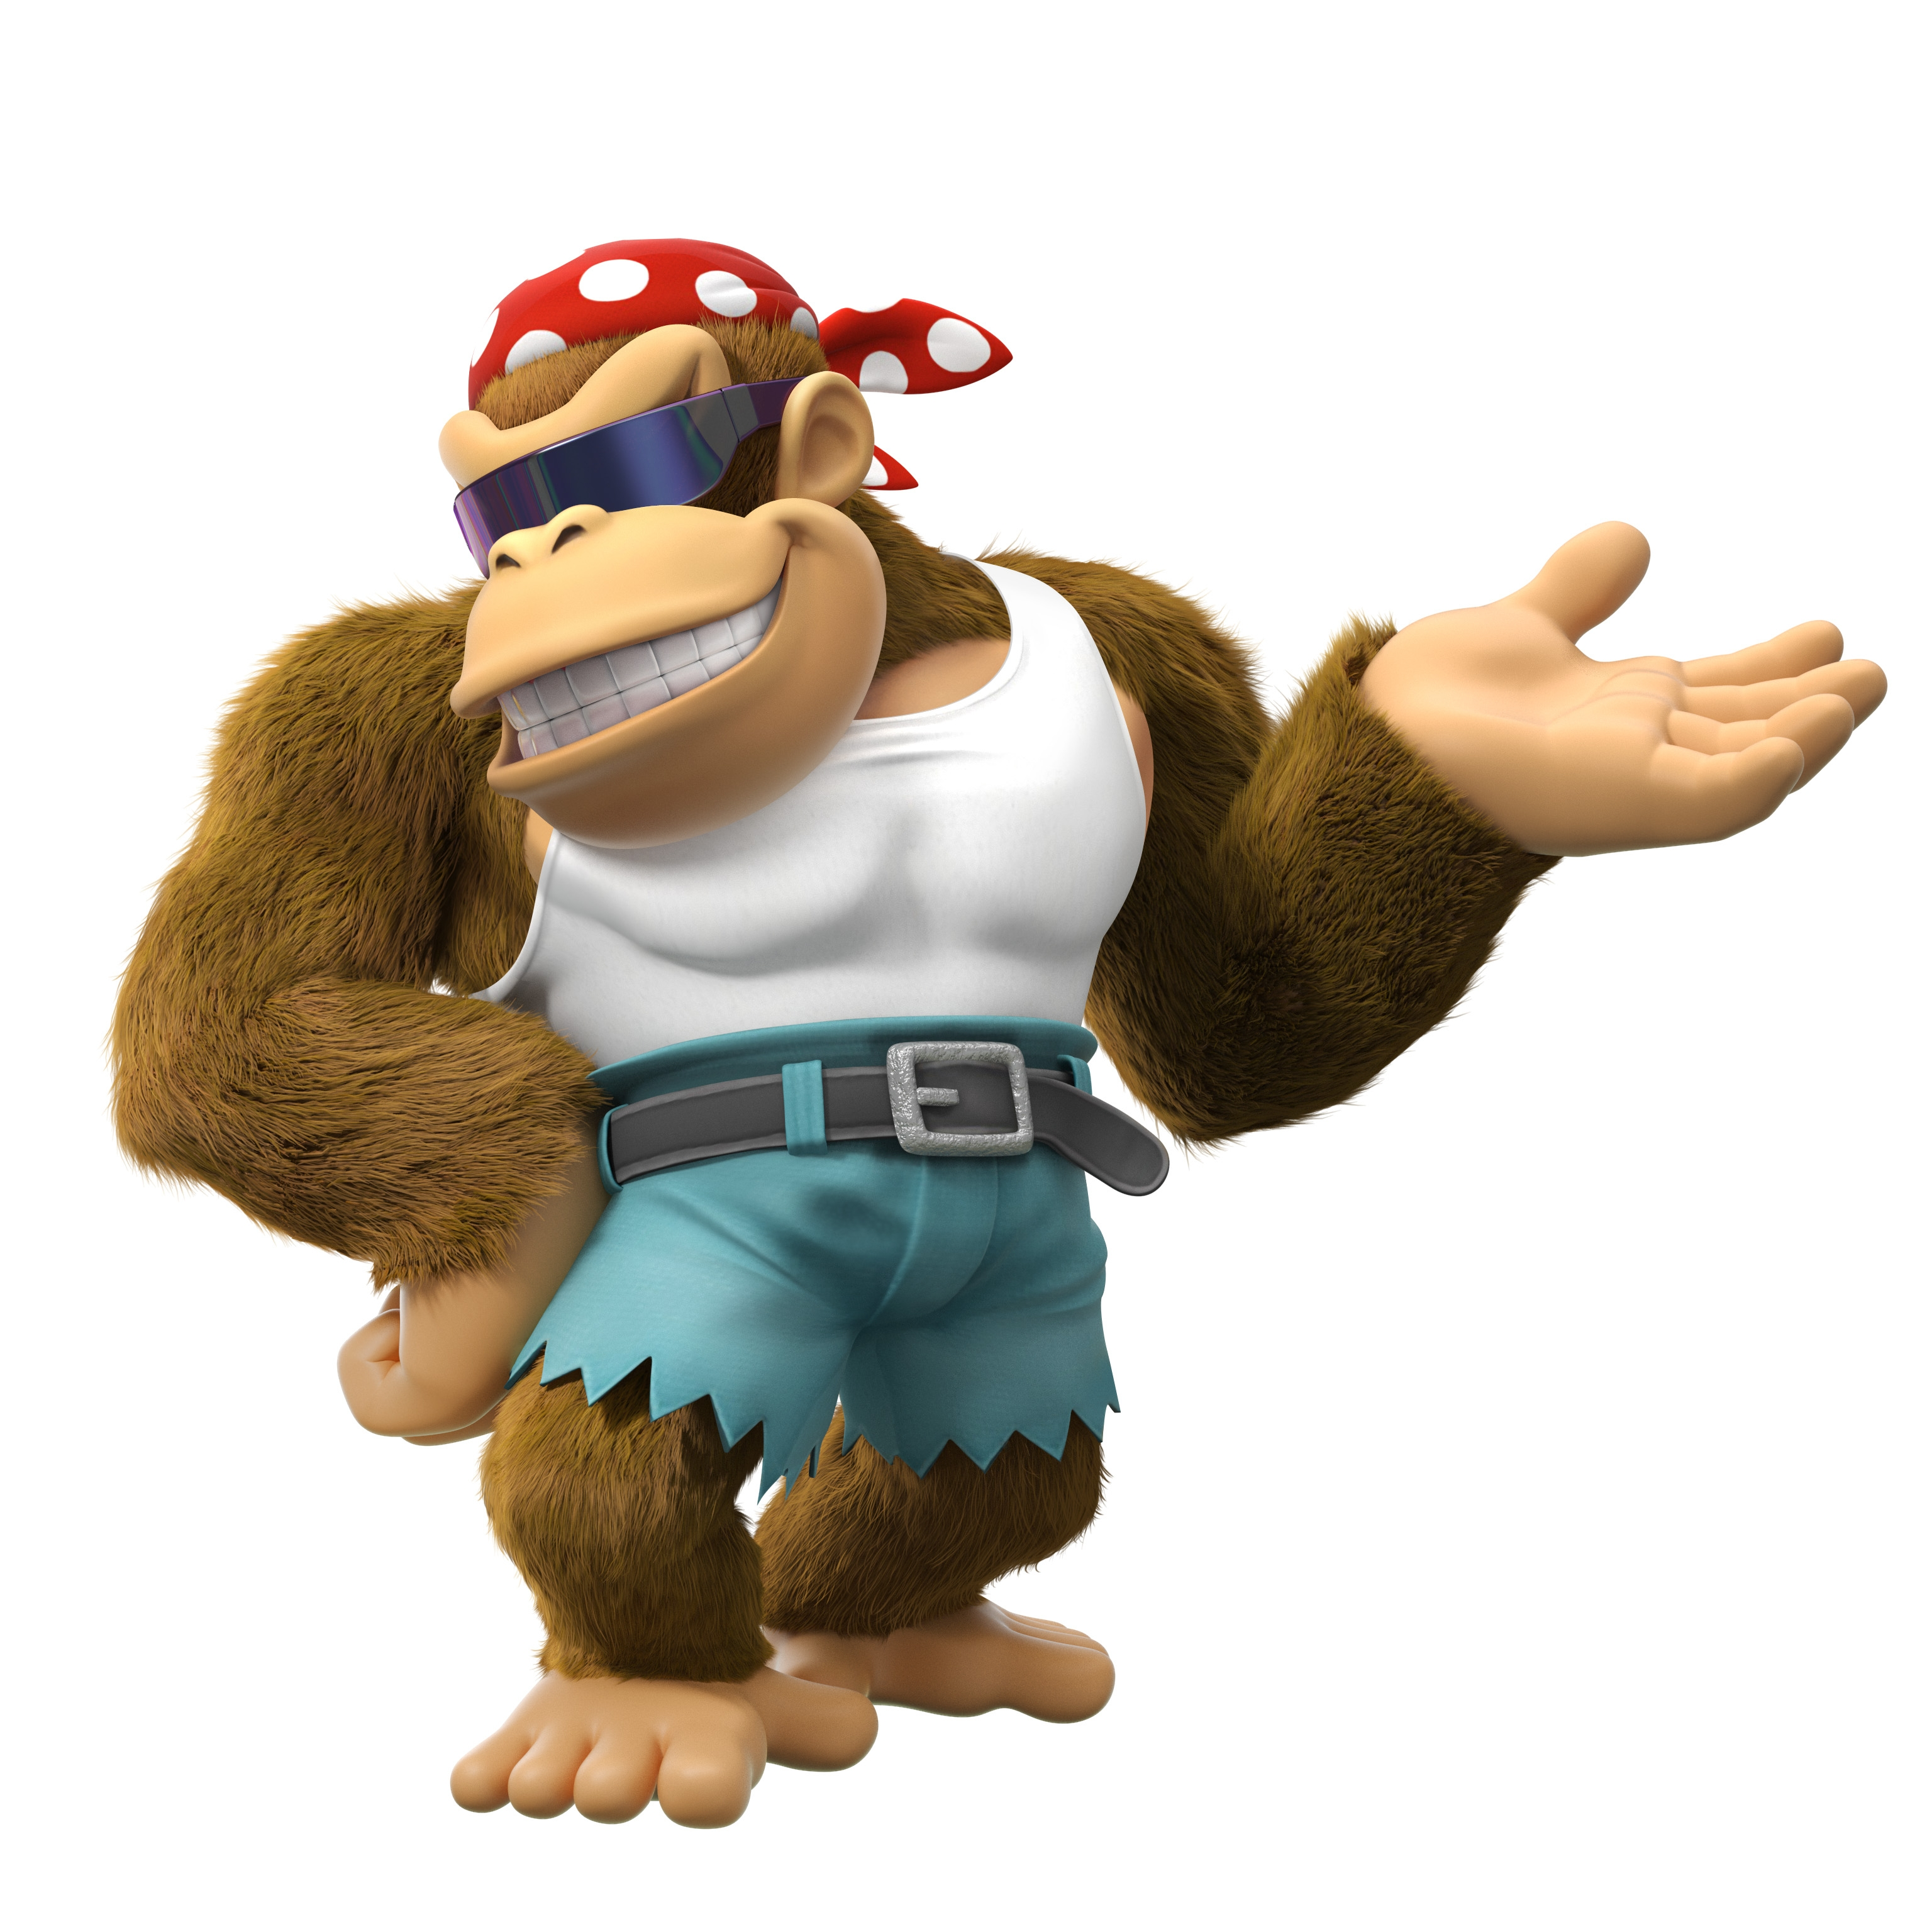 Funky Kong screenshots, images and pictures.